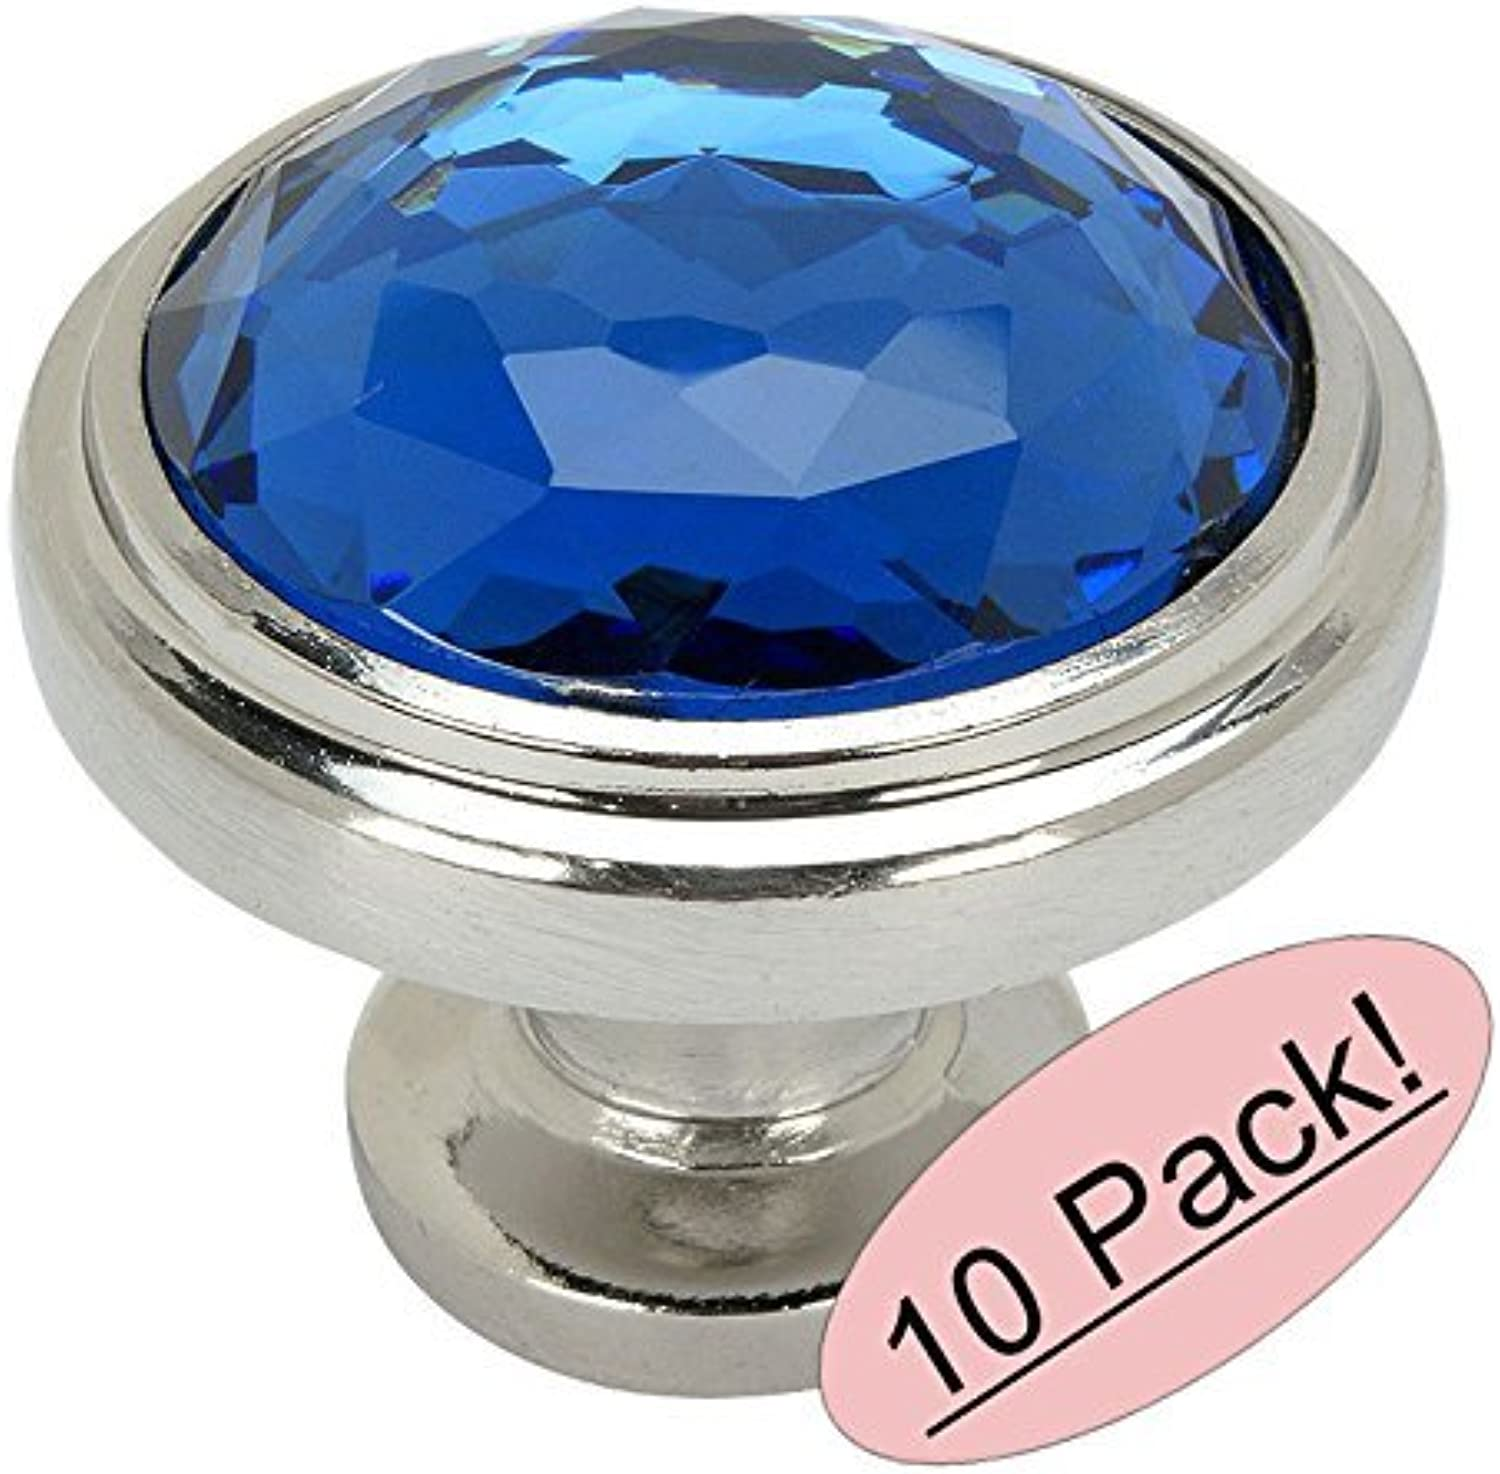 Cosmas 5317SN-BL Satin Nickel Cabinet Hardware Round Knob with bluee Glass - 1-1 4  Diameter - 10 Pack